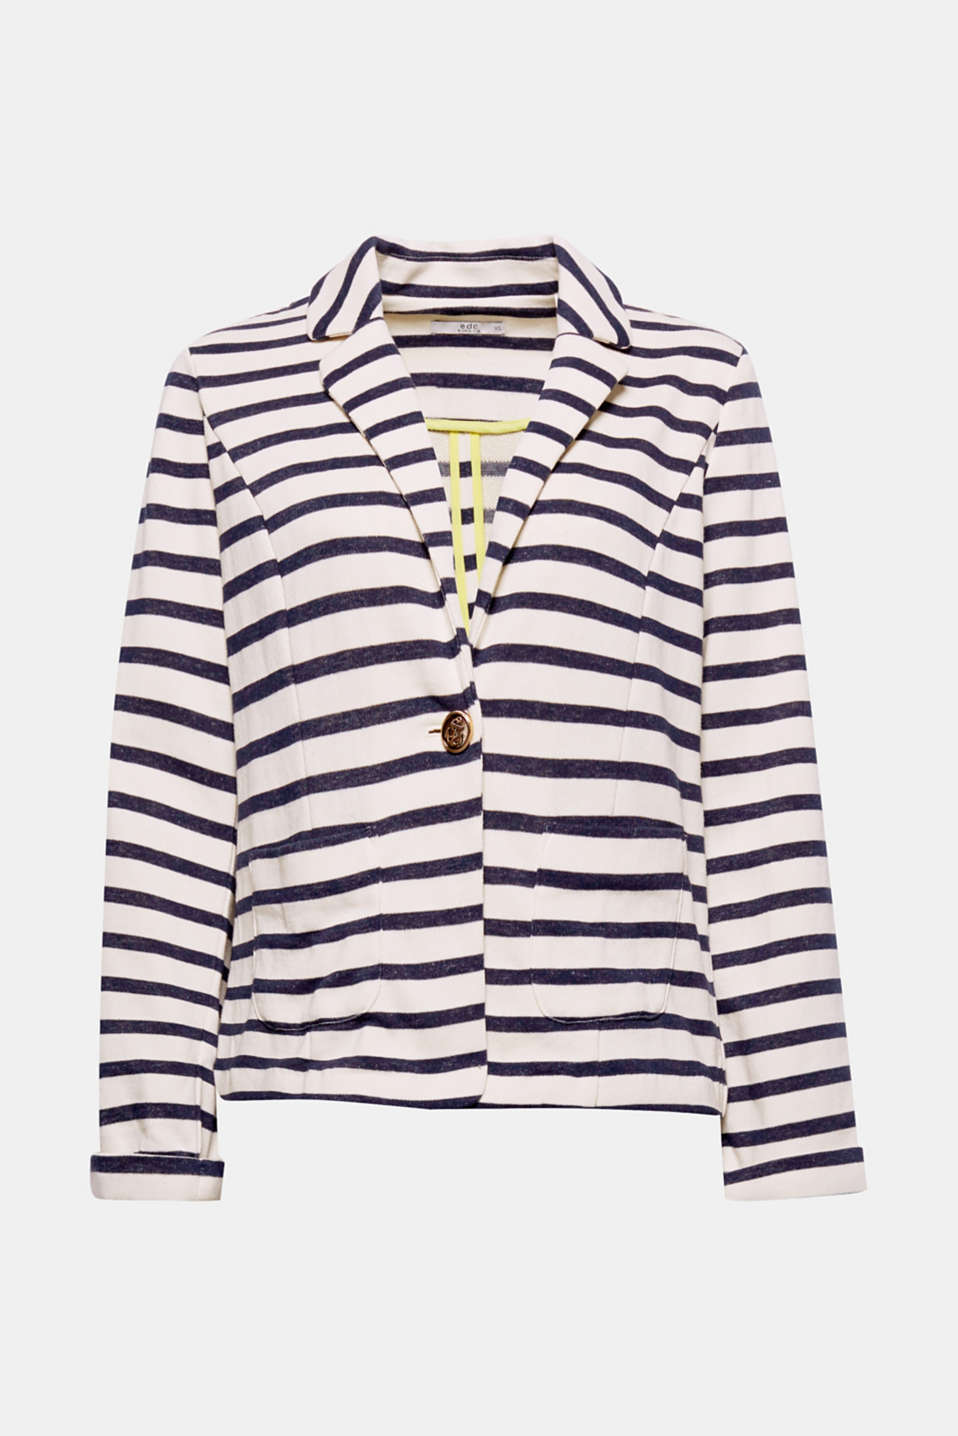 Nautical style meets casual elegance: this striped blazer with an anchor motif button complements an outfit perfectly.